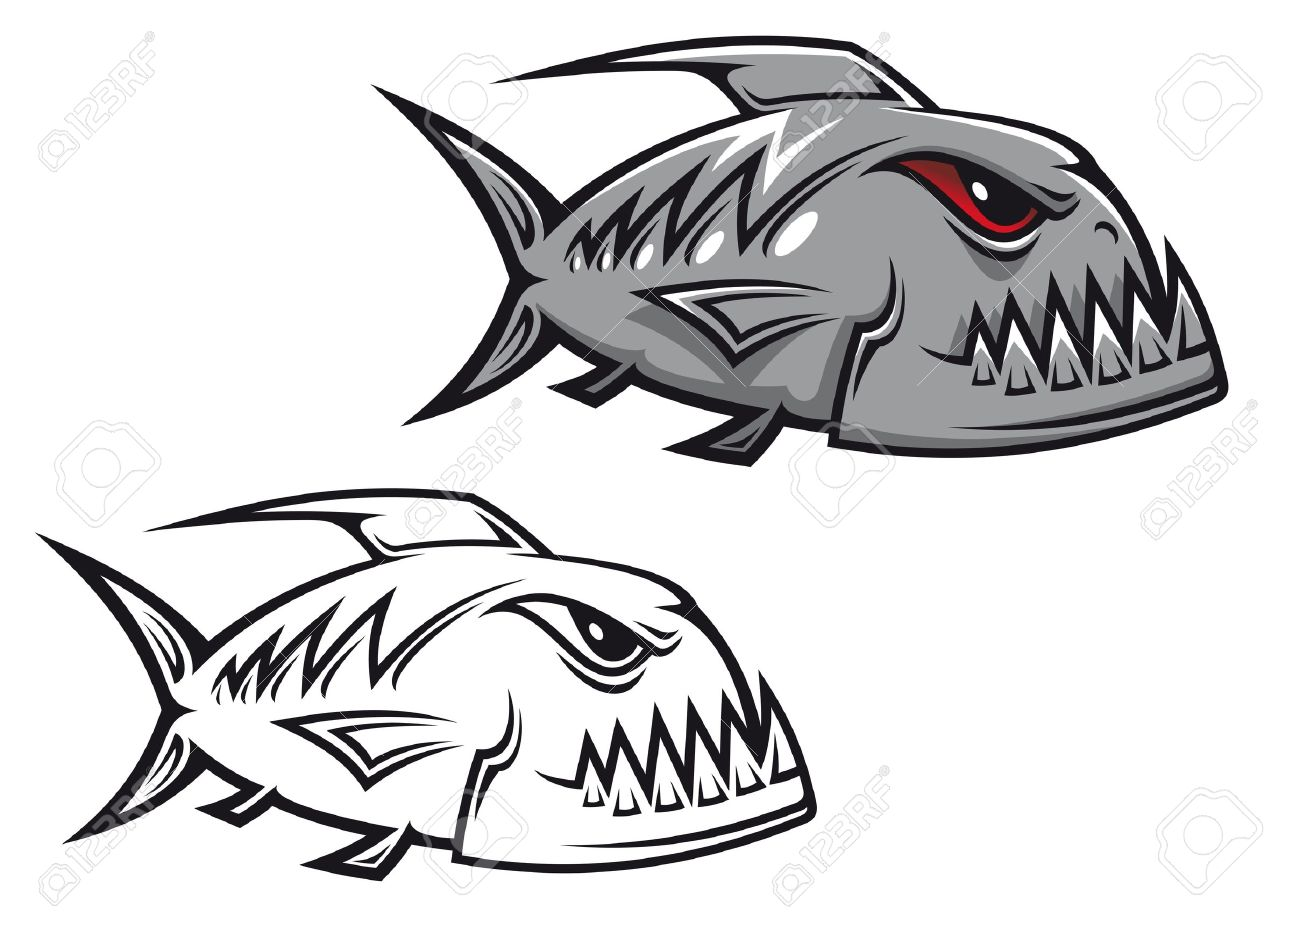 Freshwater fish clipart - Freshwater Danger Piranha Fish In Cartoon Style Isolated On White Background